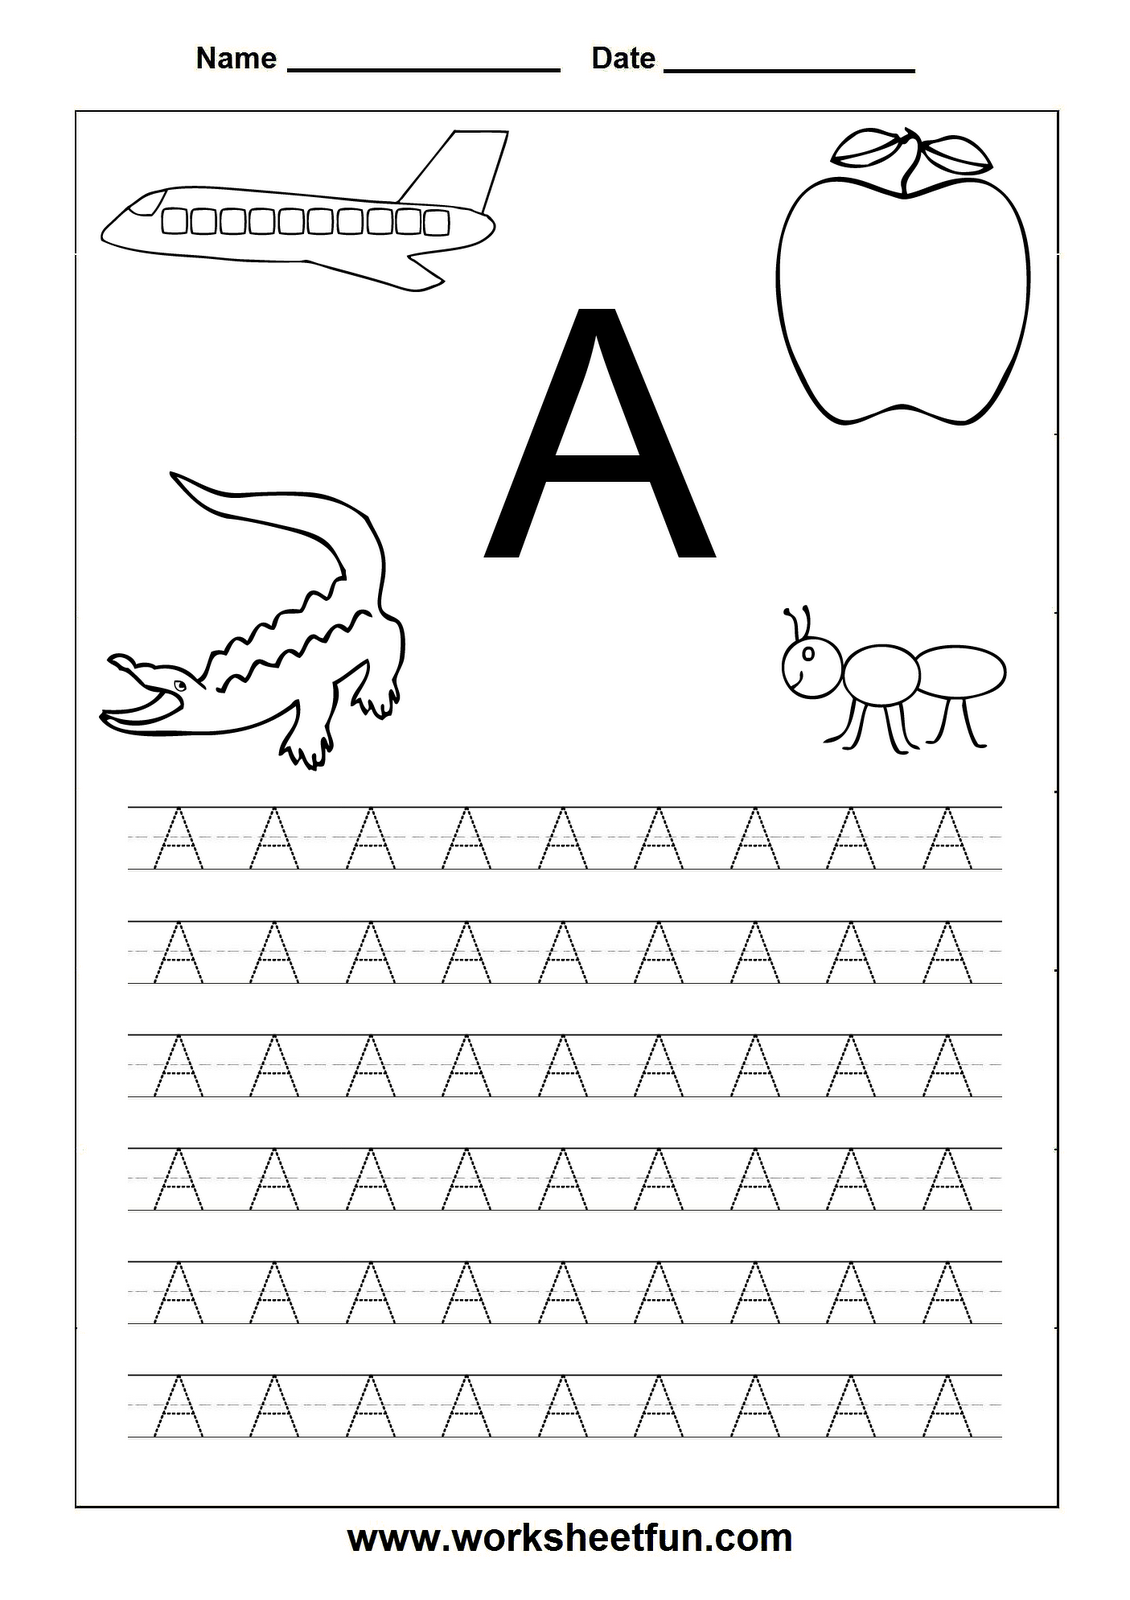 Worksheets Alphabet Worksheets For Preschool letter worksheets kindergarten davezan